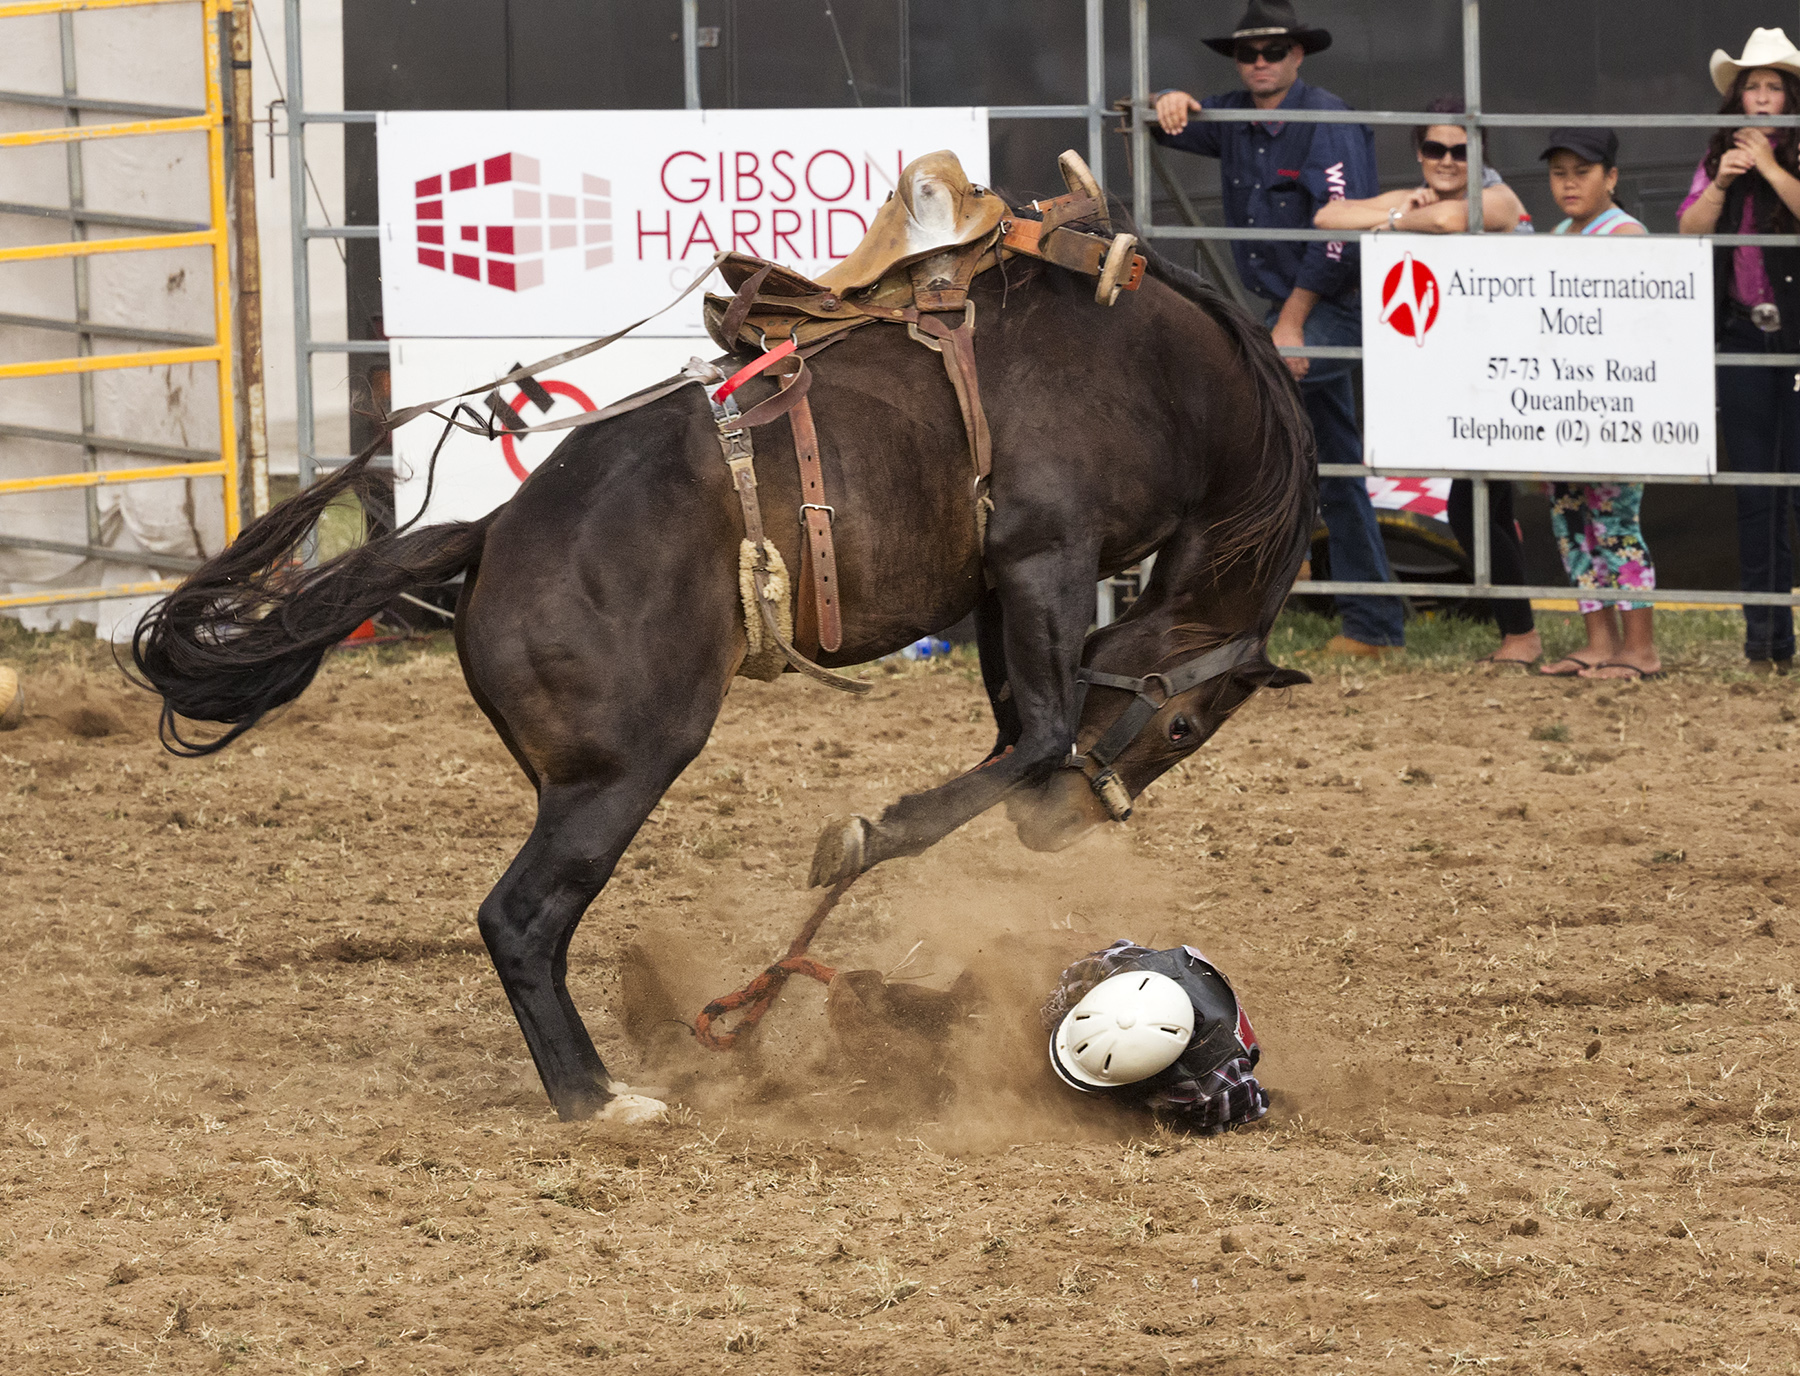 Brian_Jones_Rodeo Thrills and Spills_Rodeo Spill 6.jpg